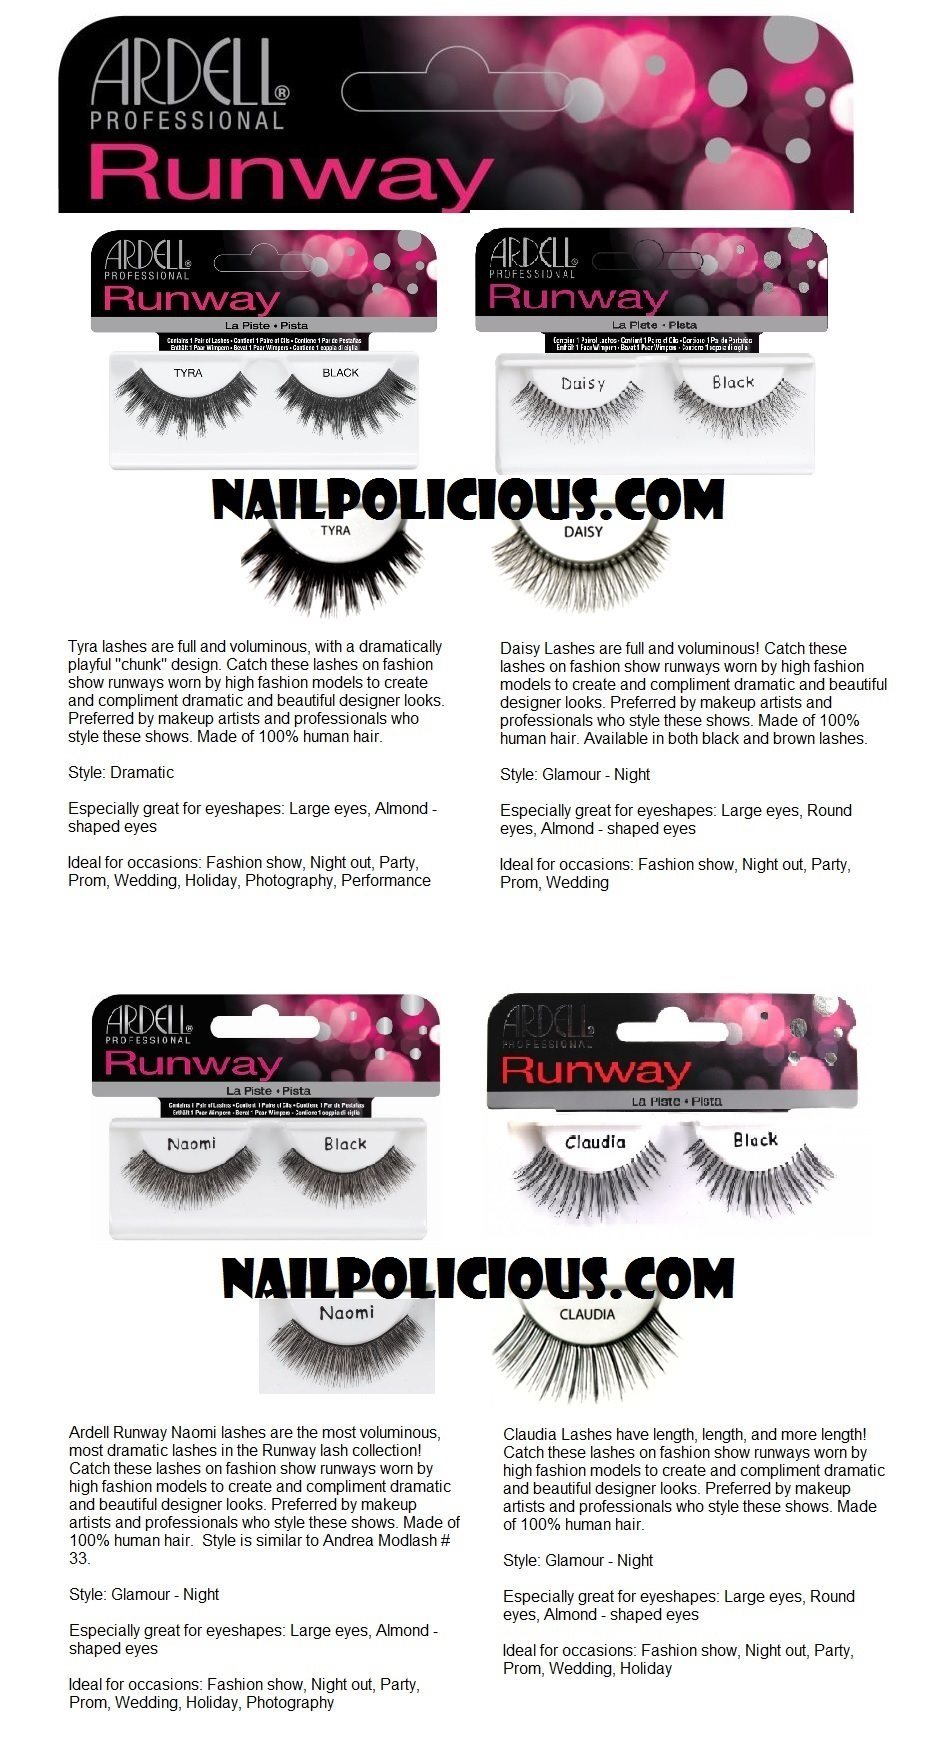 45fa12844e3 Ardell Just For Fun WildLash. Ardell Dura Lash Lashes. Ardell DuraLash  Flare Short